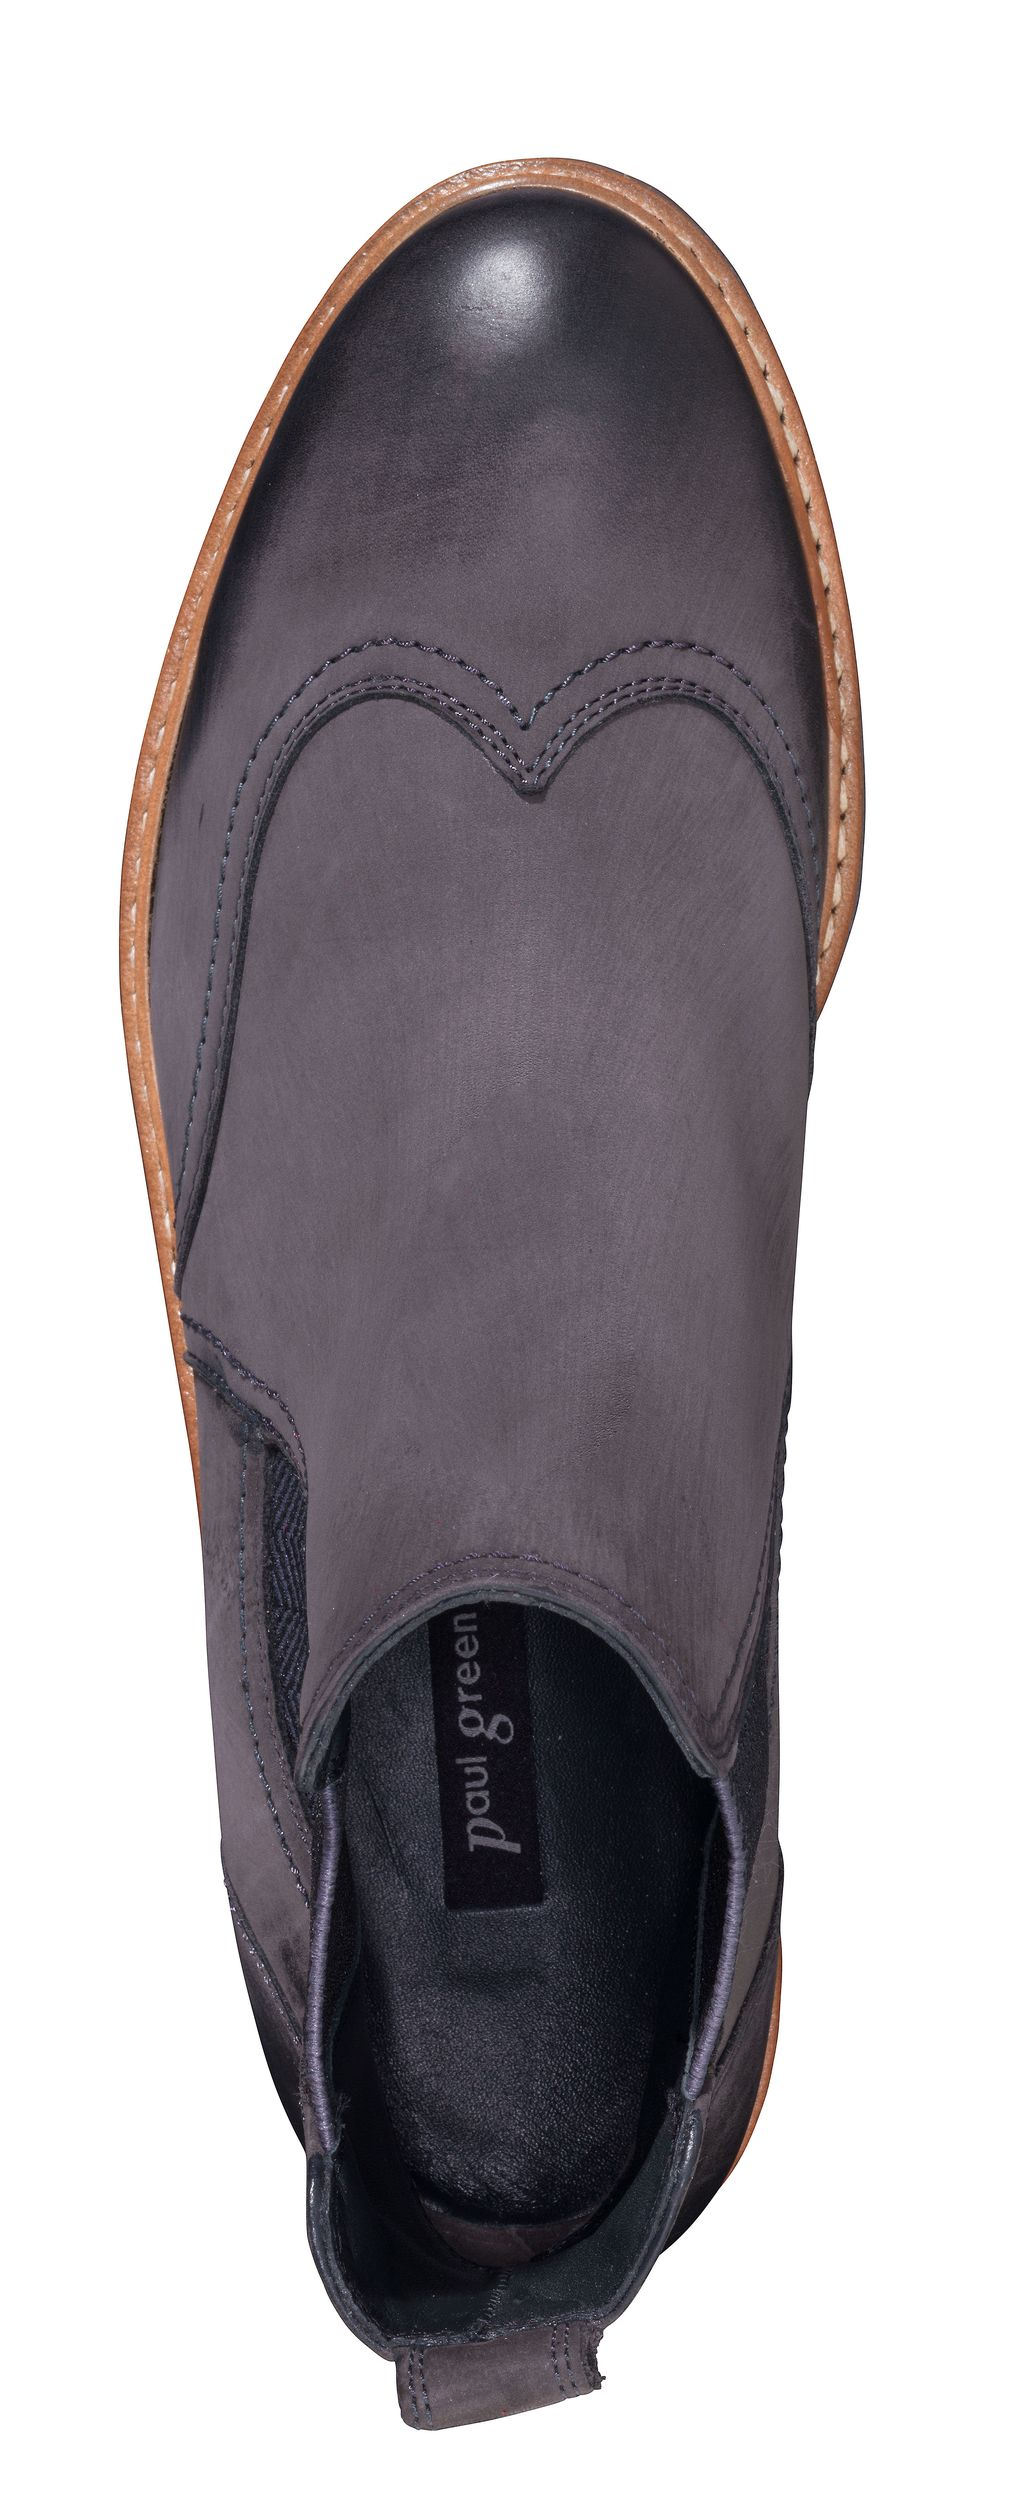 huge discount 47c70 bb1db Manually crafted Chelsea Boots in gery - Paul Green